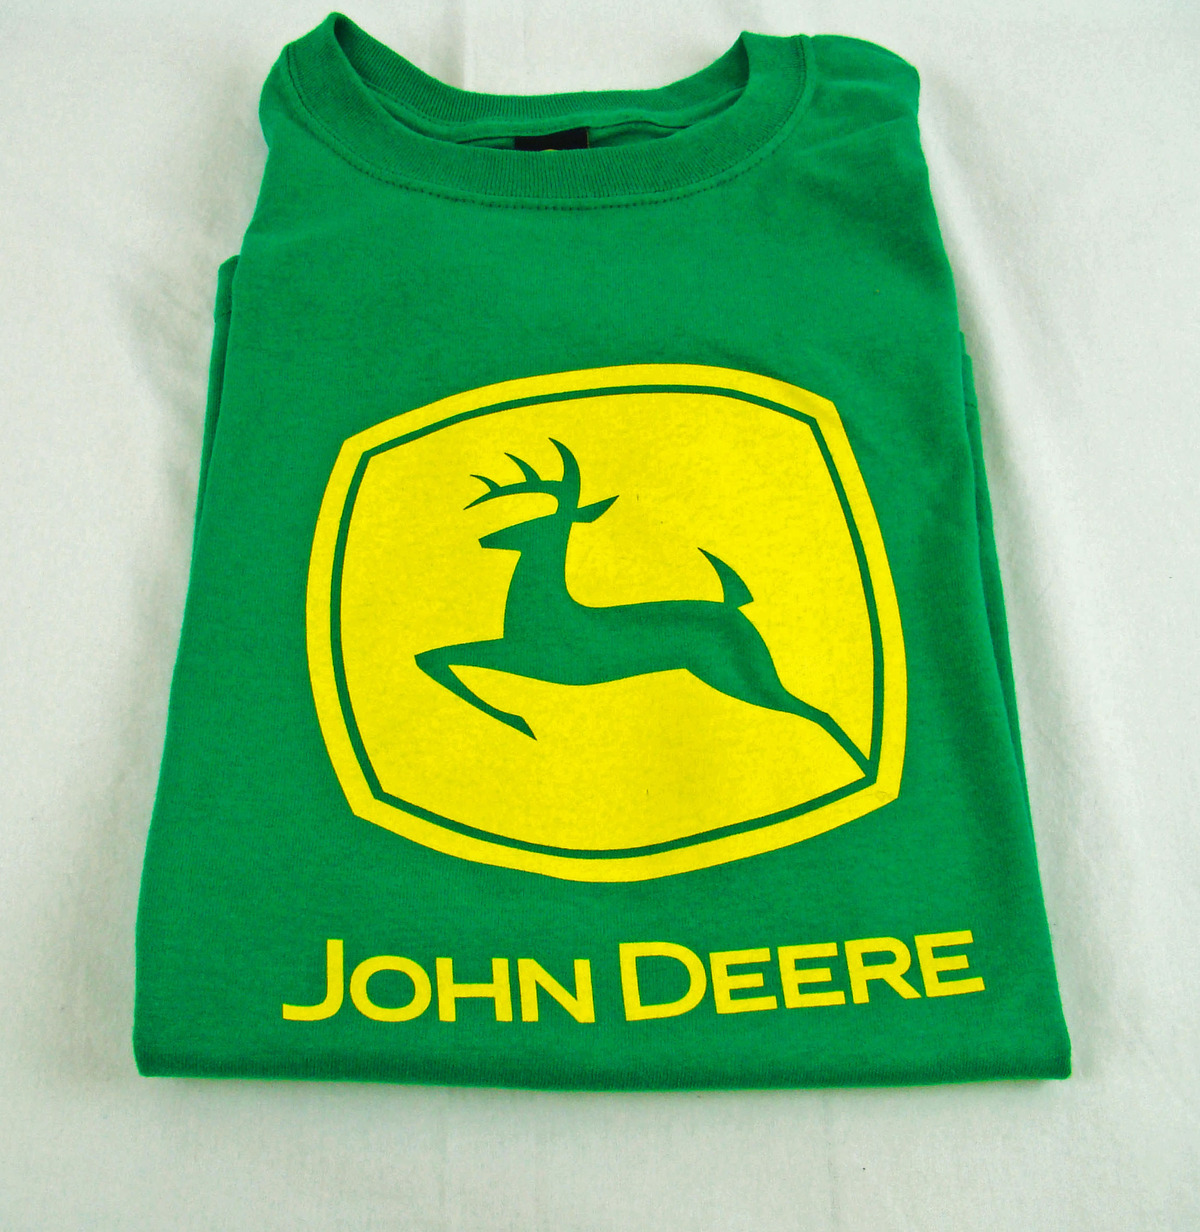 You are viewing a NWT John Deere Shirt. Perfect for all around casual